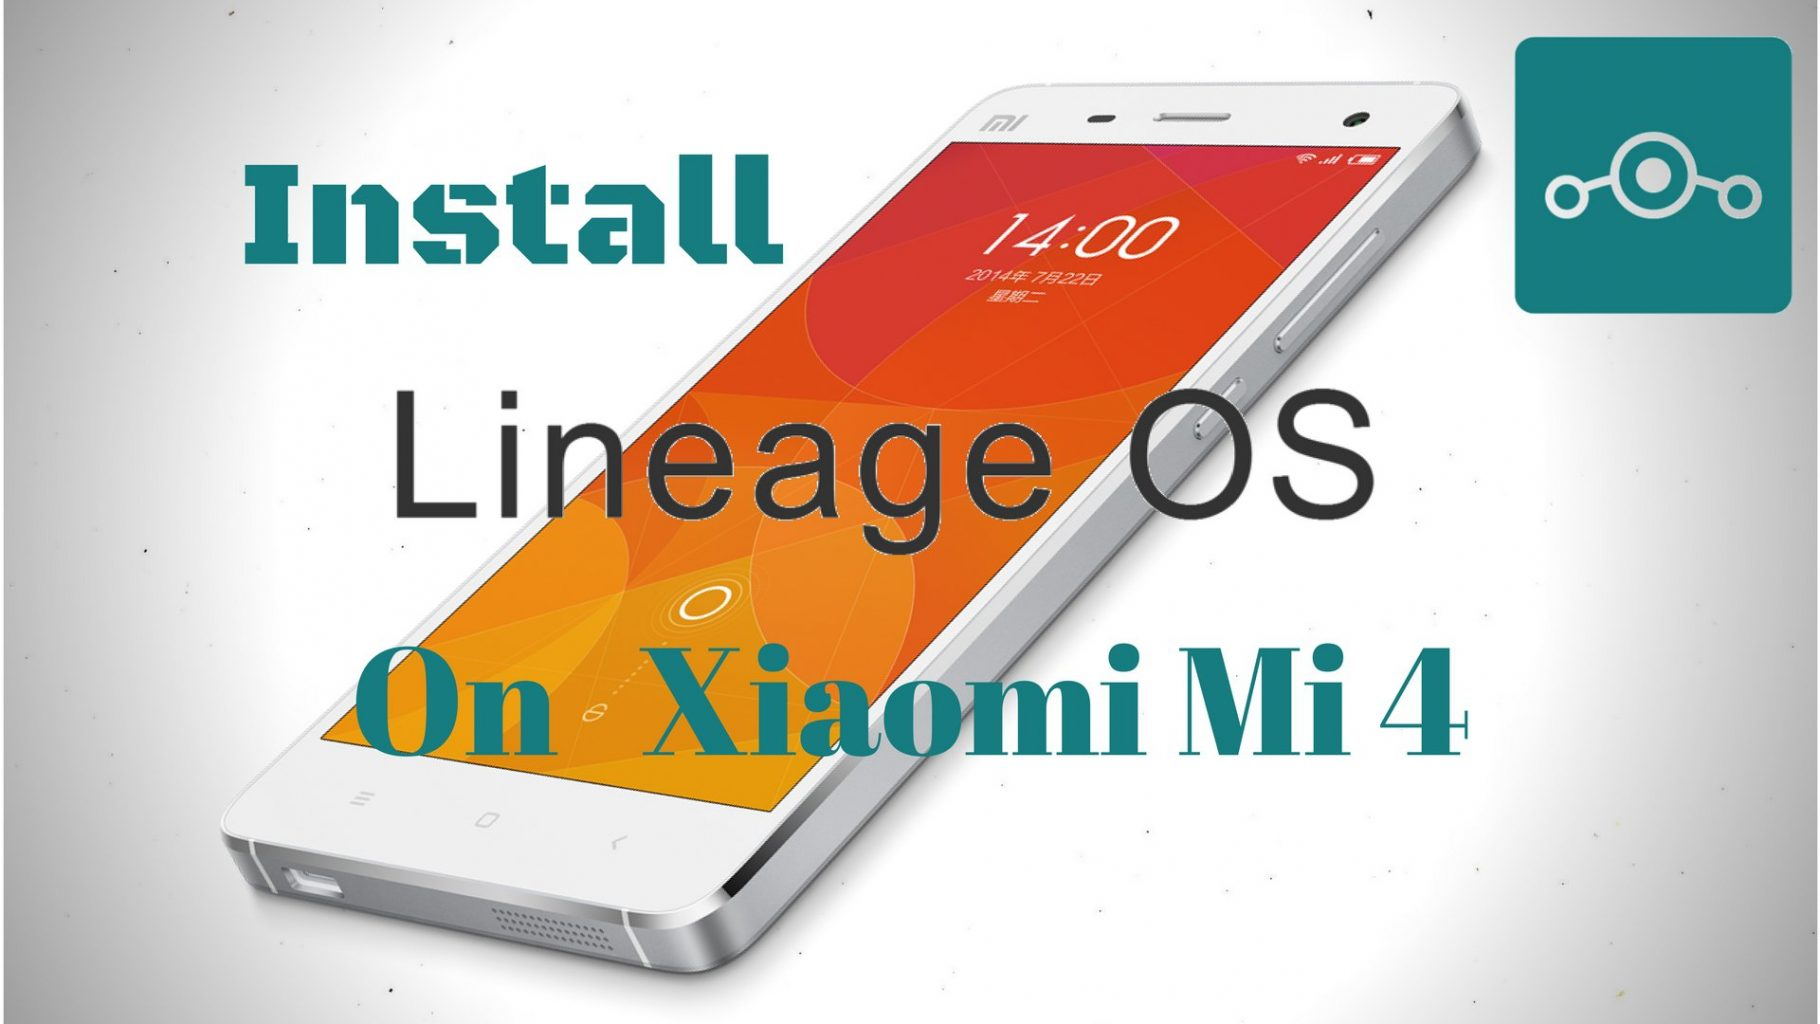 Install Lineage OS 14 1 On Xiaomi Mi 4 (cancro) - Hacks & Geeks